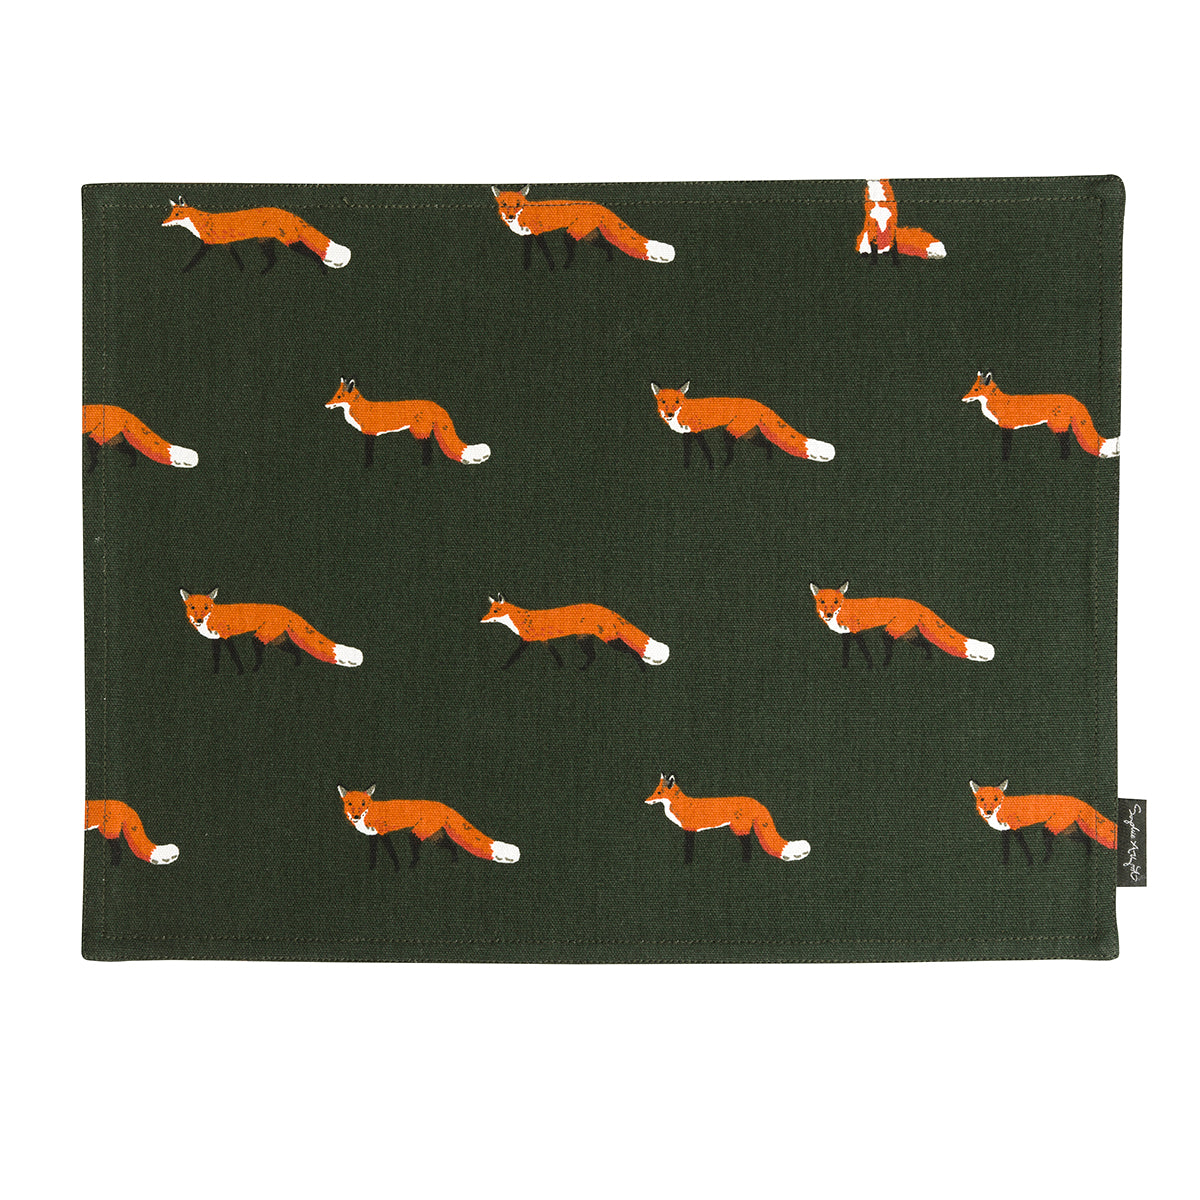 Foxes Fabric Placemat